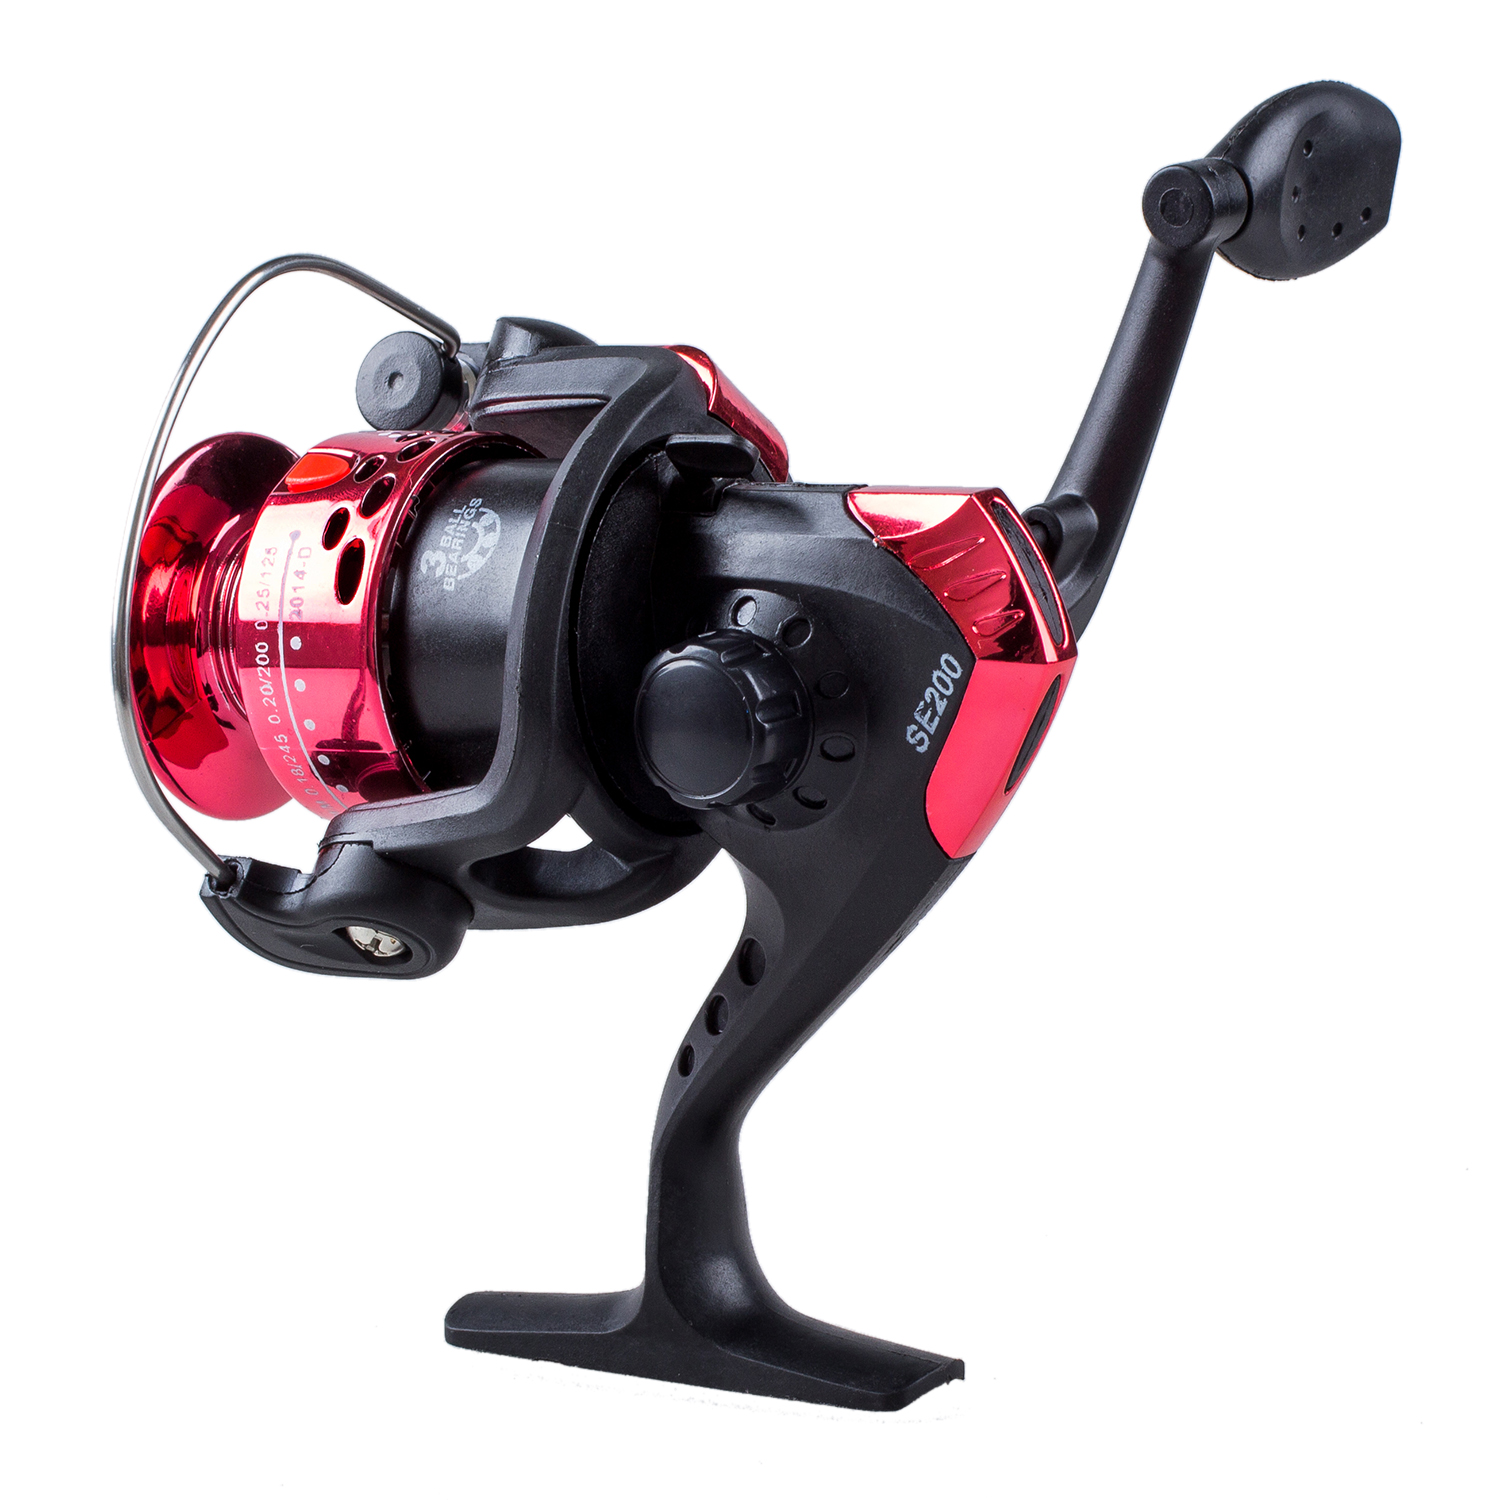 3BB Ball Bearings Left/Right Interchangeable Collapsible Handle Fishing Spinning Reel SE200 5.2:1 with High-tensile Gear (Red)